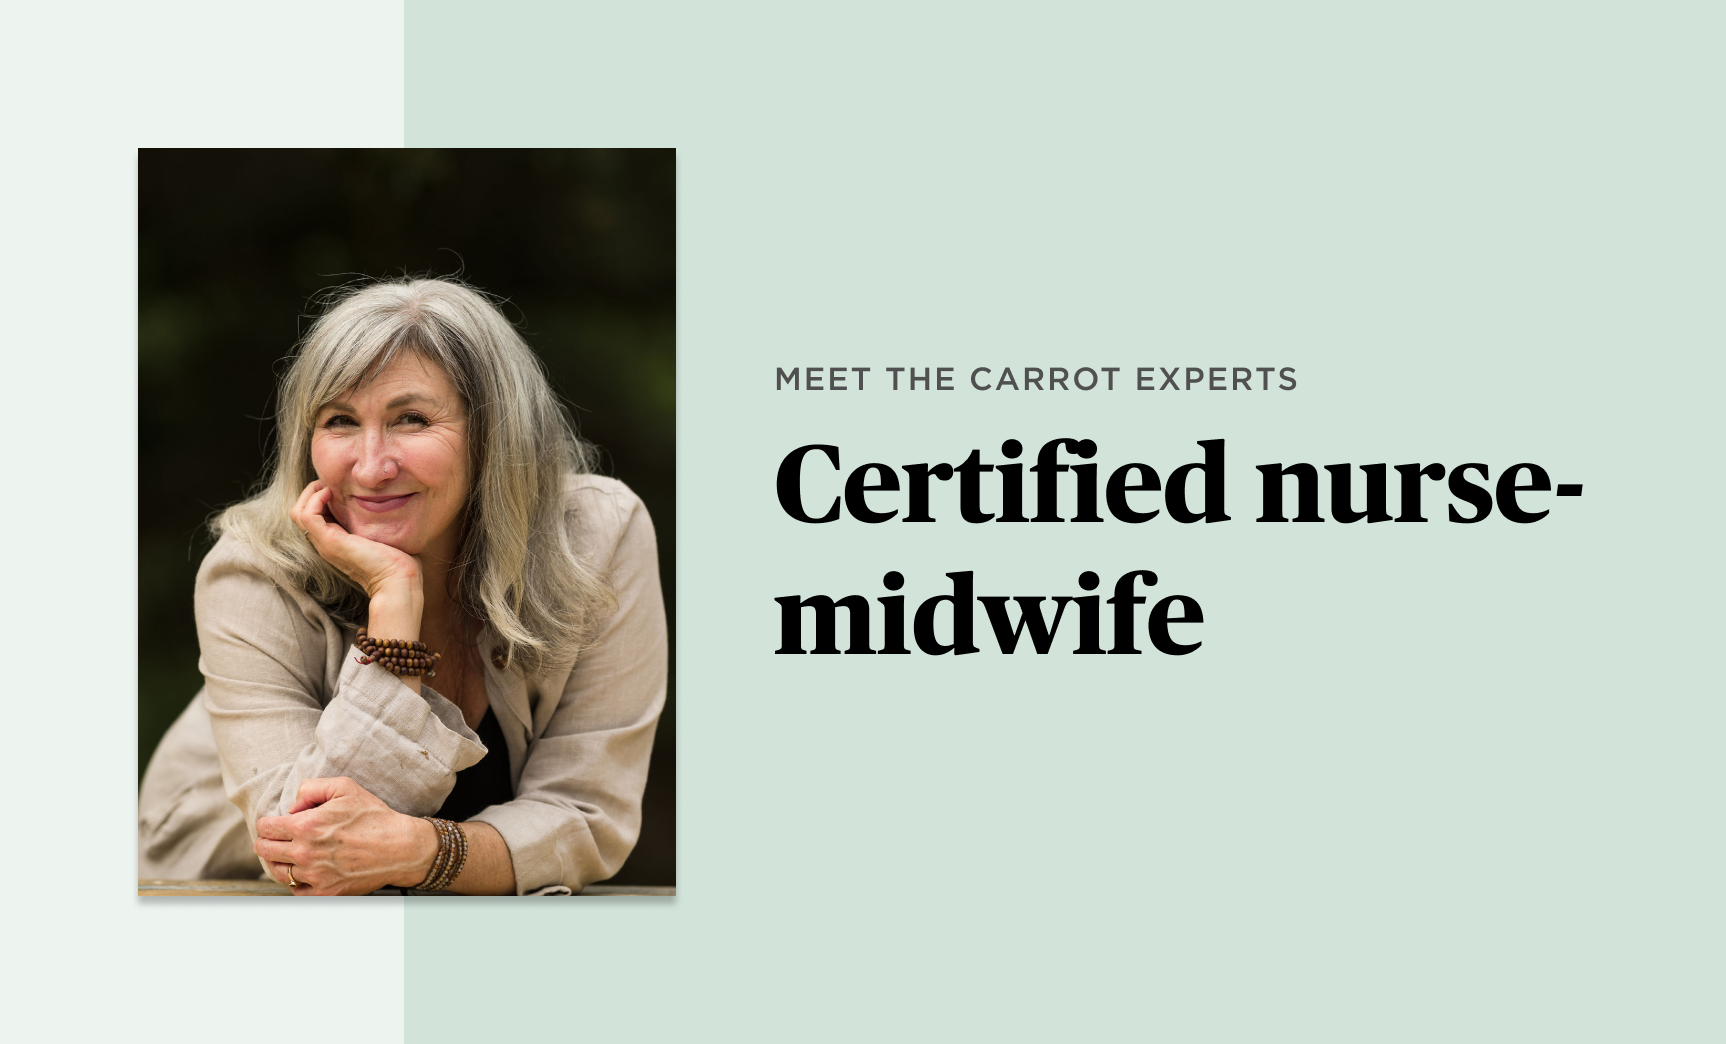 Meet the Experts: Sheri Matteo, CNM